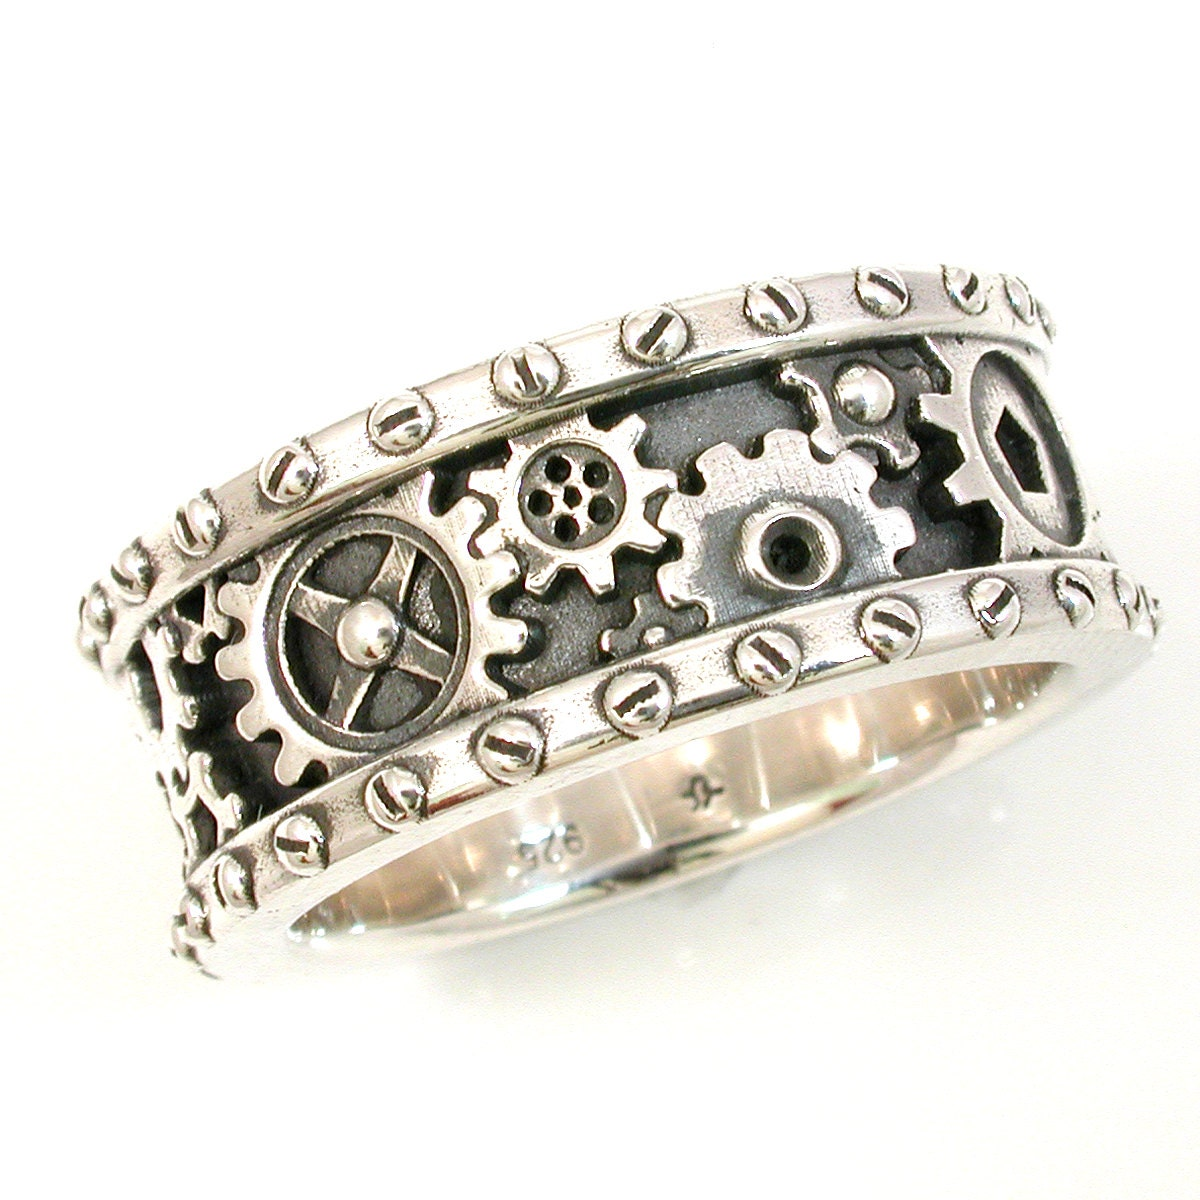 SteamPunk Mens Silver Ring - Gears and Rivets - Industrial Steam Punk - Handmade - SwankMetalsmithing